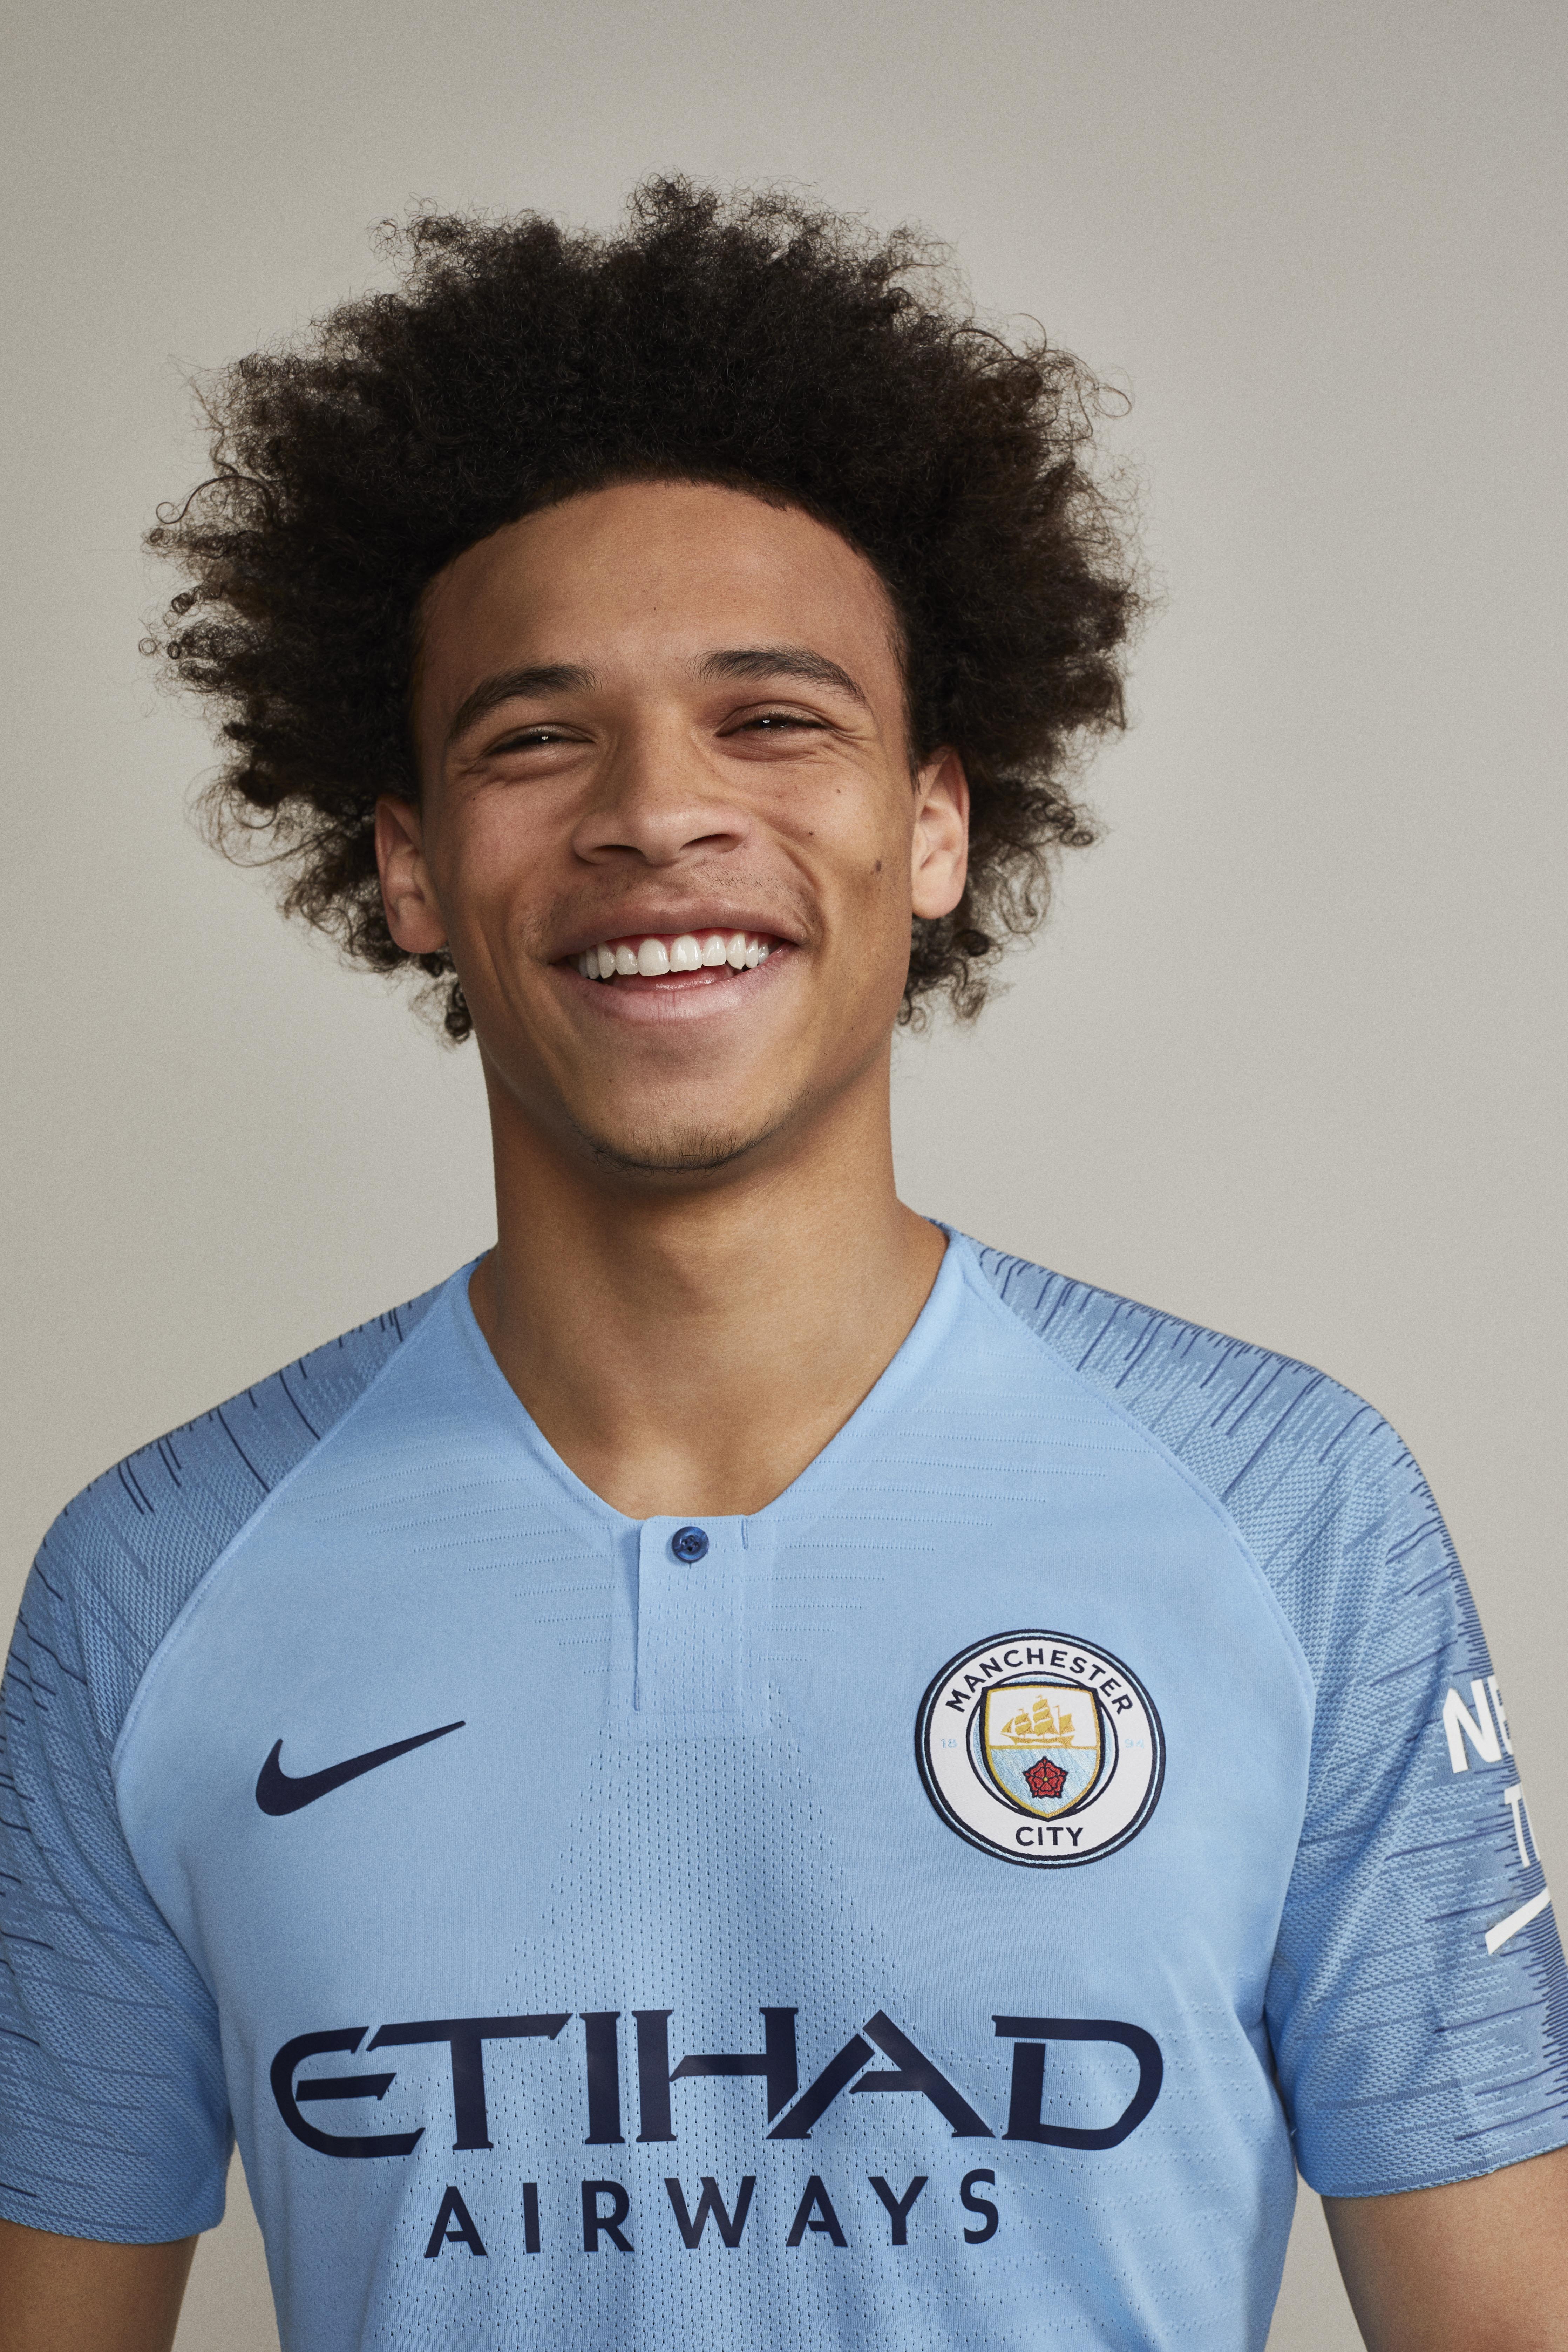 f5b9a024e The new 2018 19 Manchester City home kit is available at mancity.com shop  and nike.com